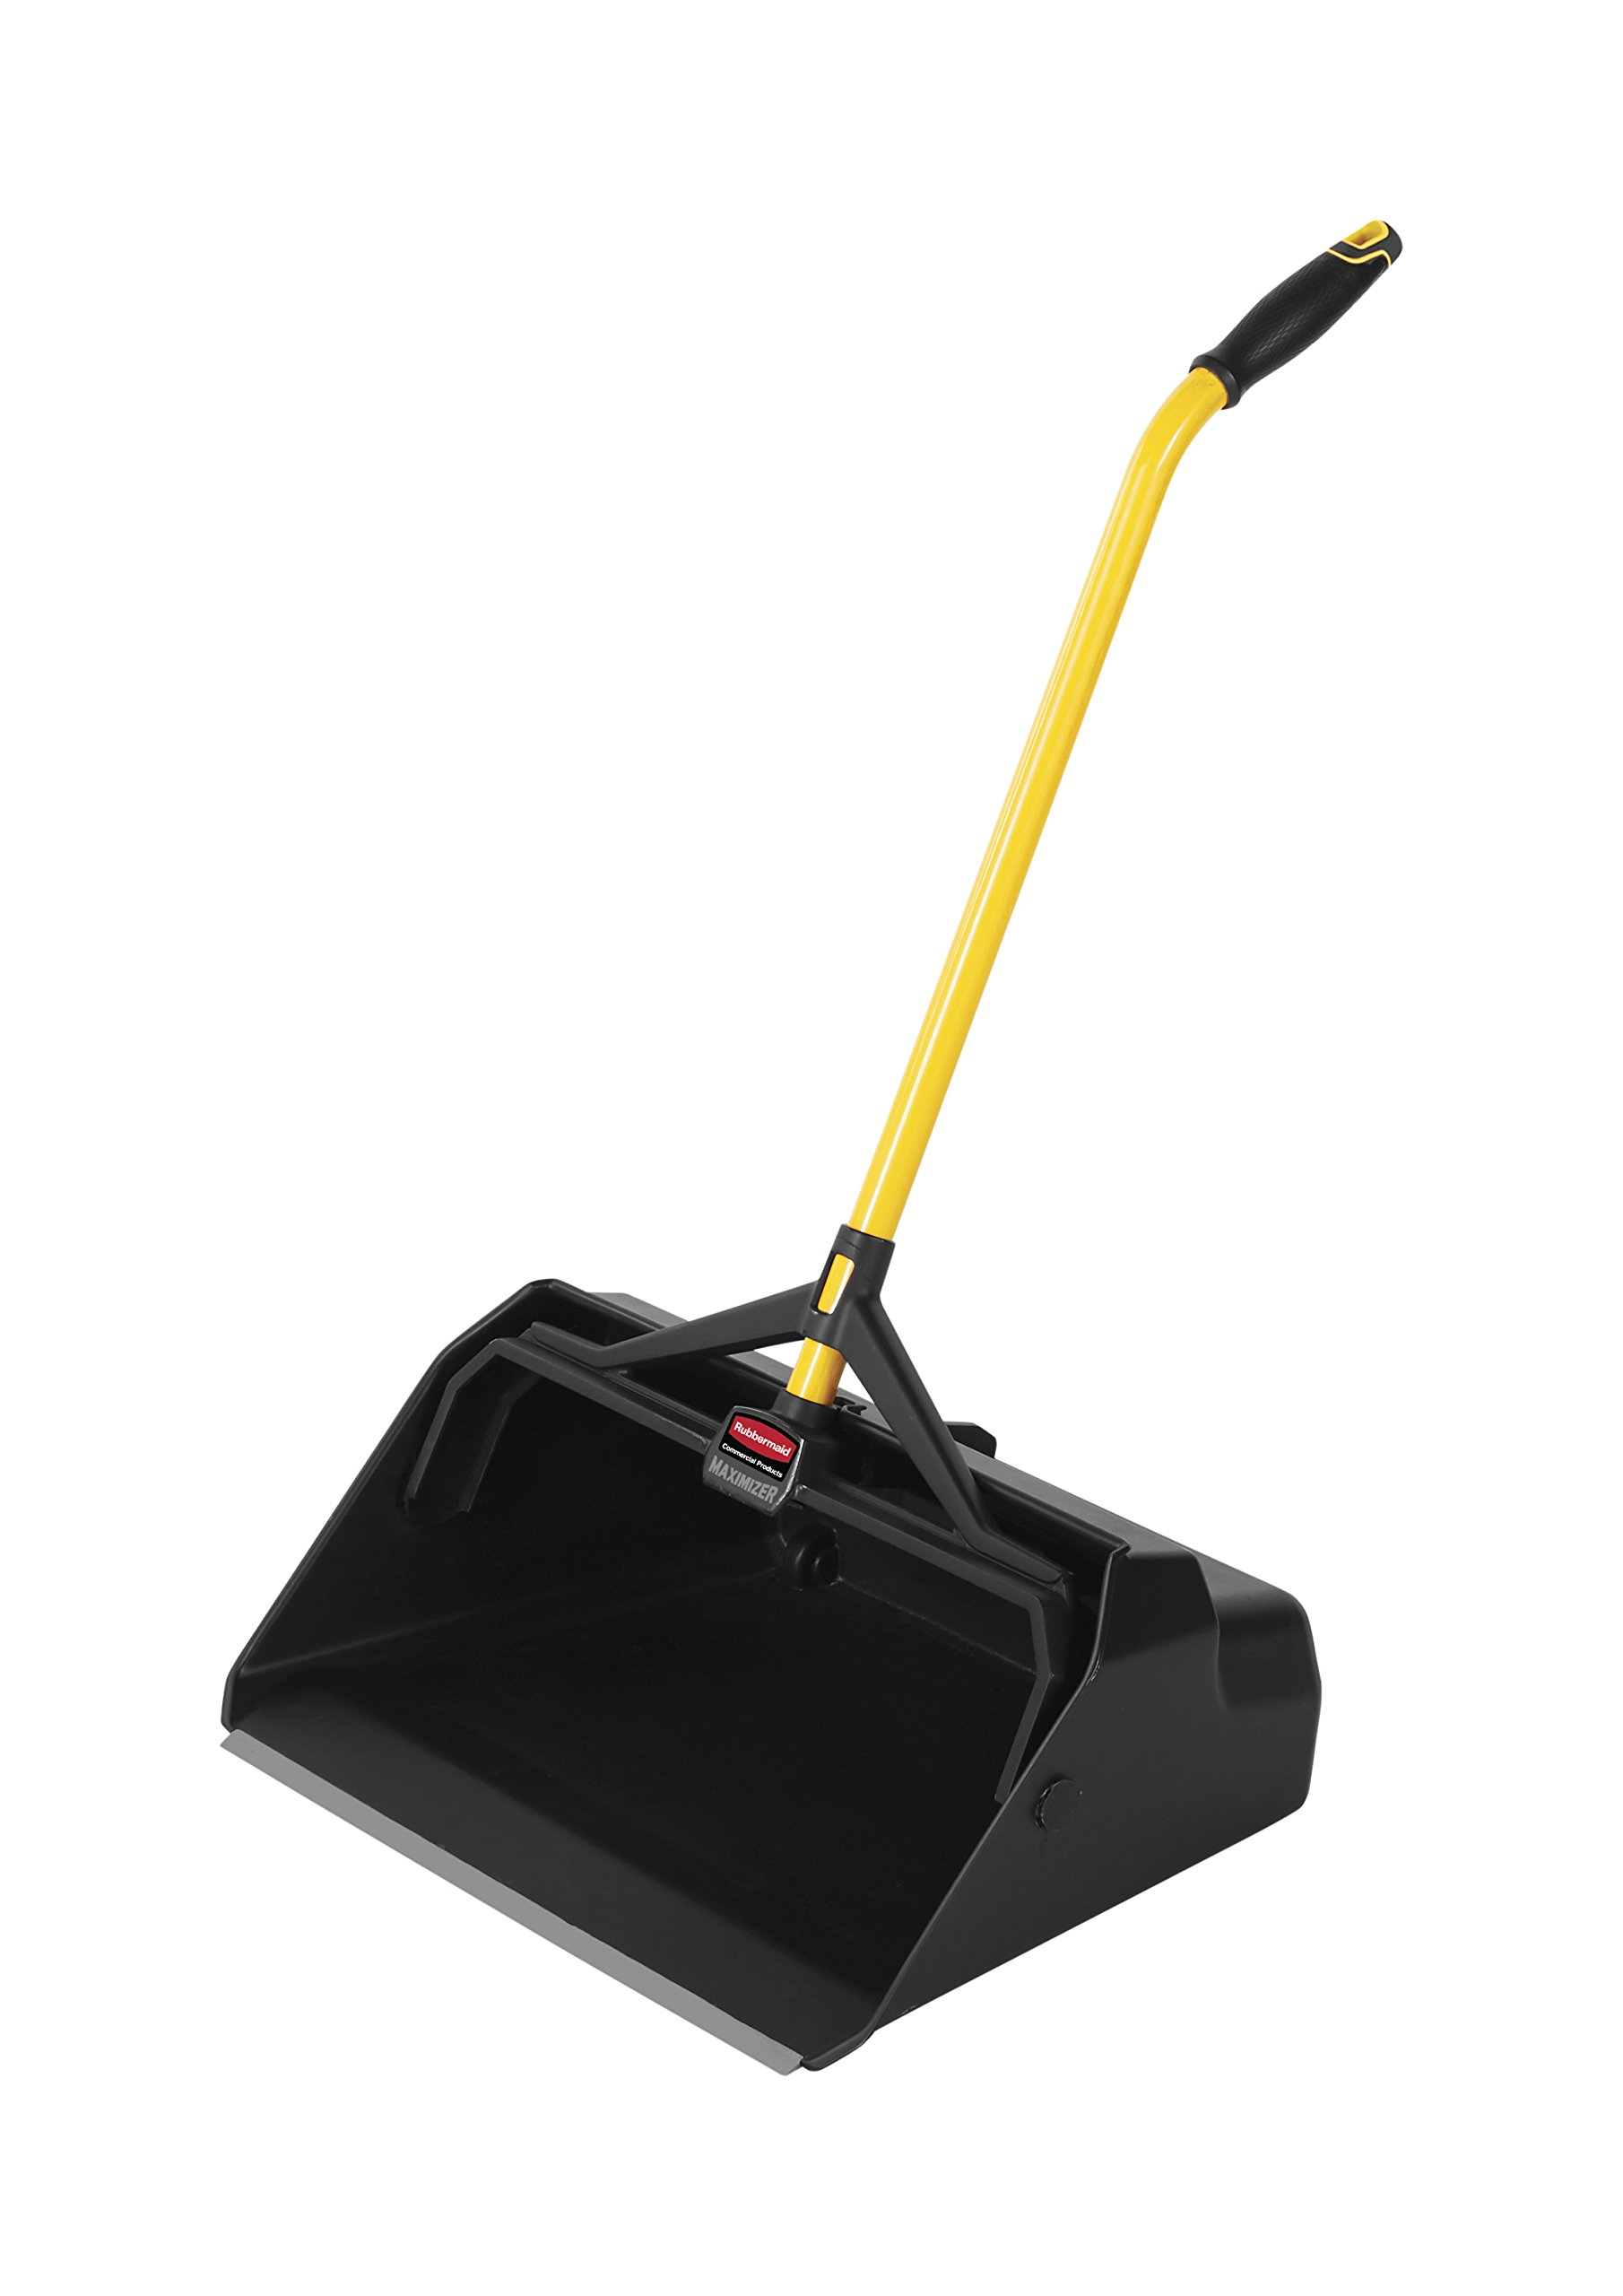 Rubbermaid Commercial Products Maximizer Heavy-Duty Stand-Up Debris Pan, Black (2018781)